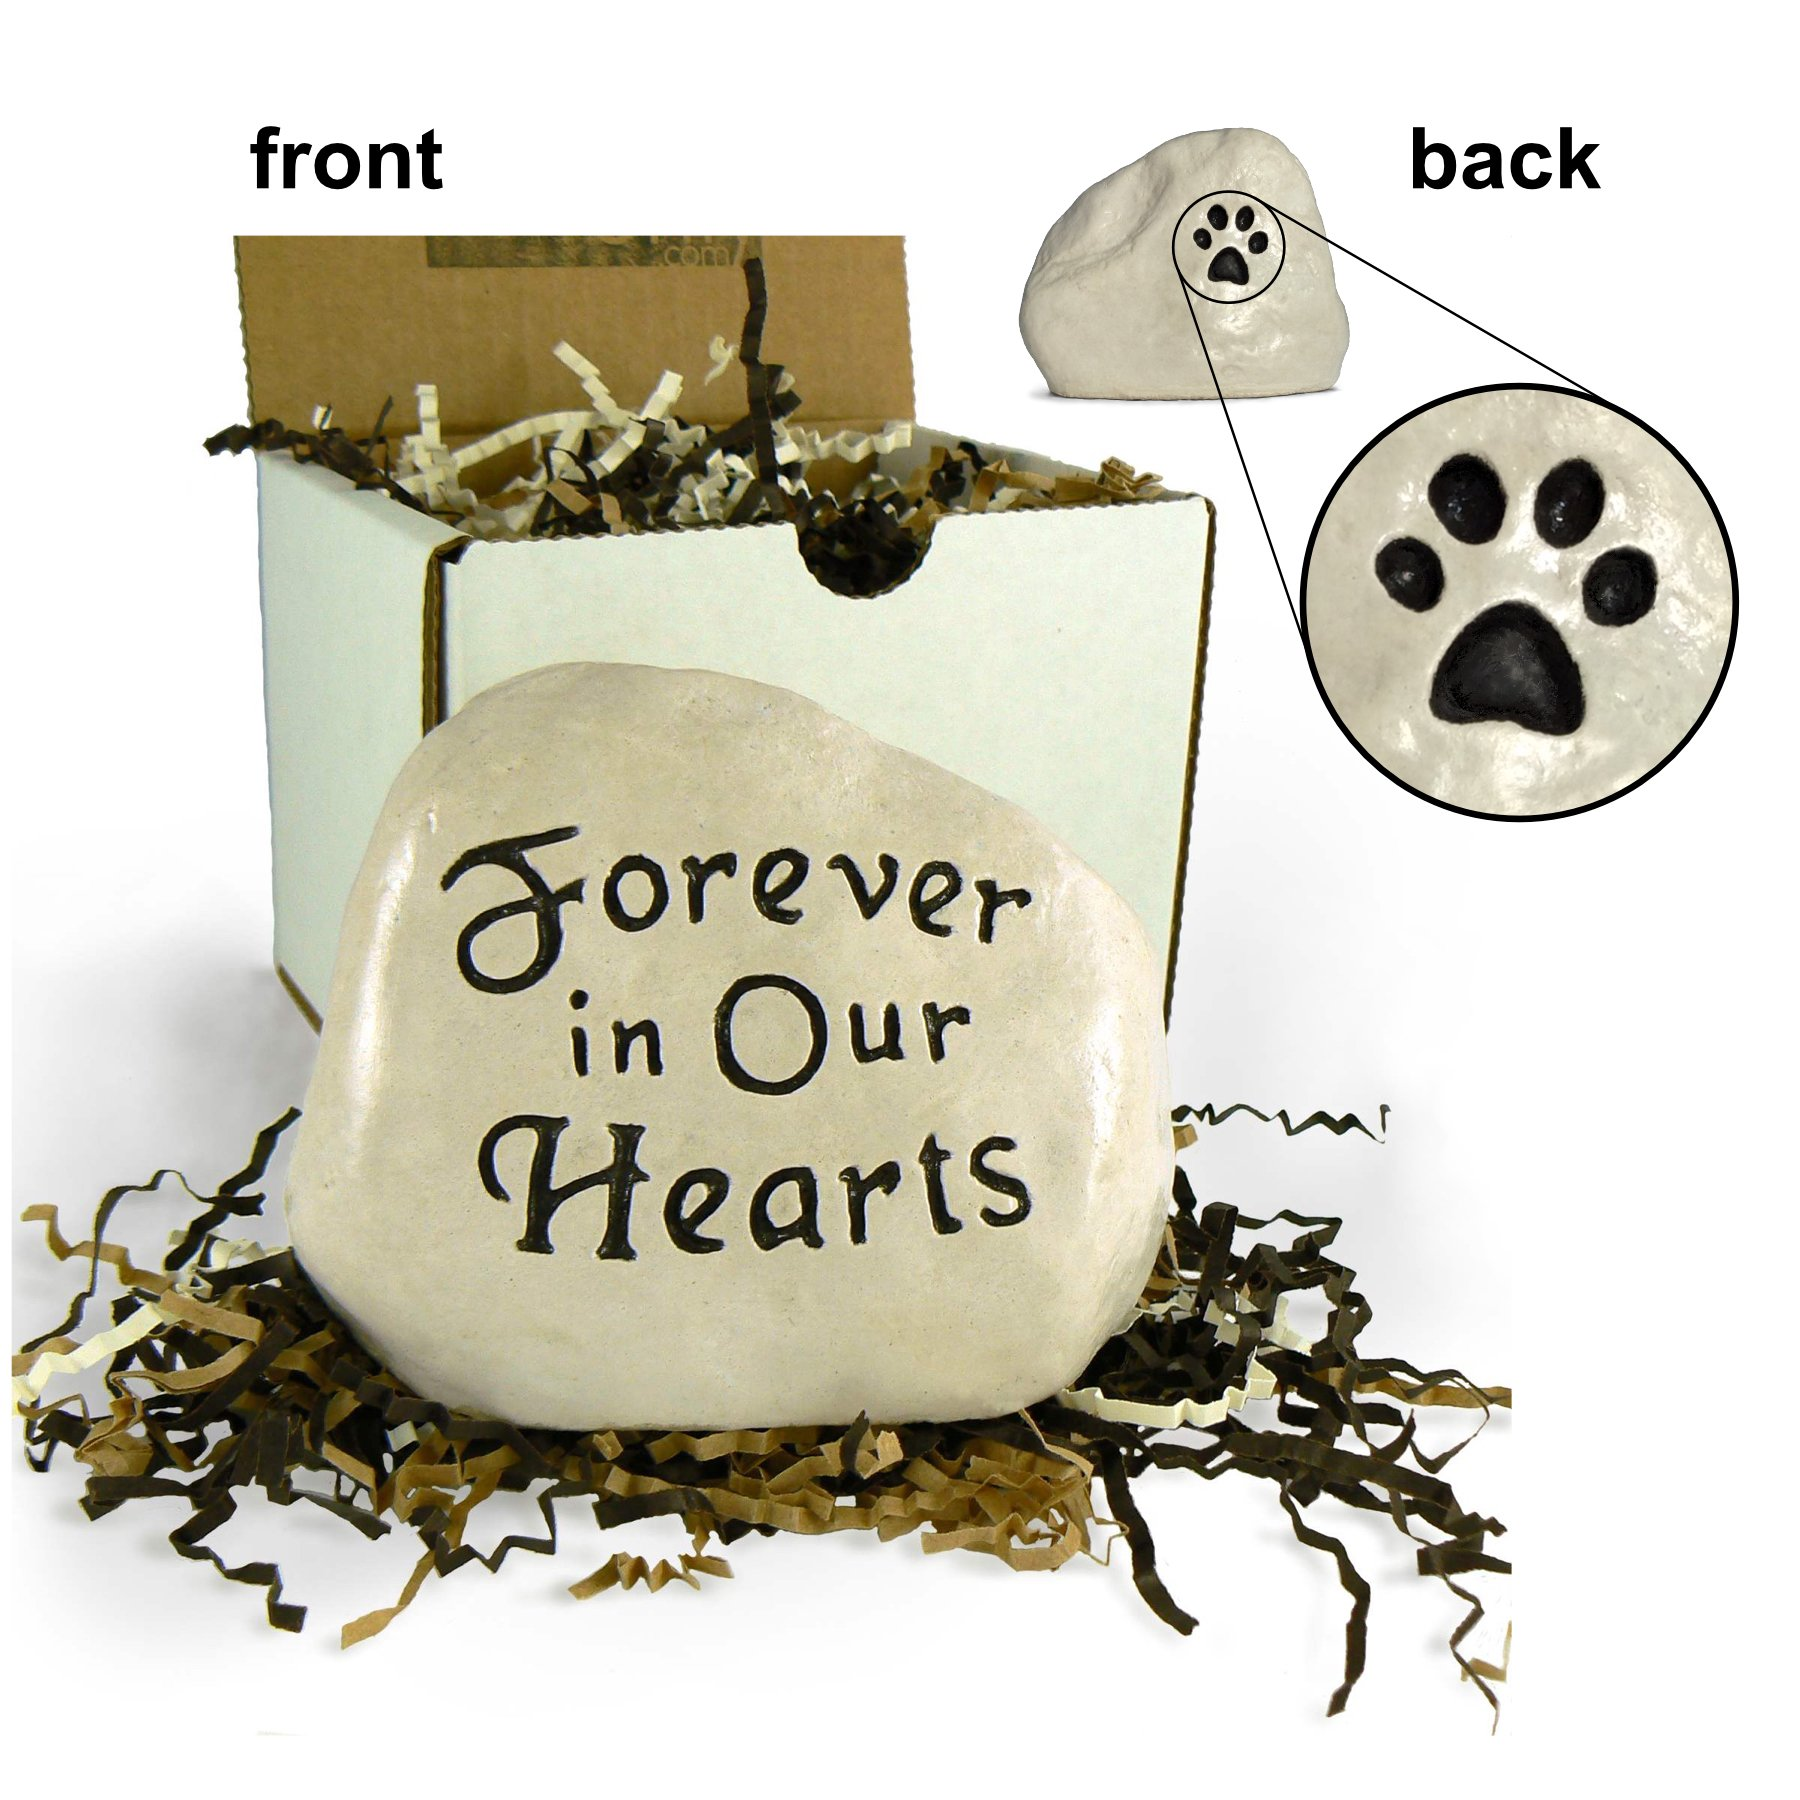 ''Forever in Our Hearts'' Engraved in Stone with Paw Print on the Back (Cat Paw Print)